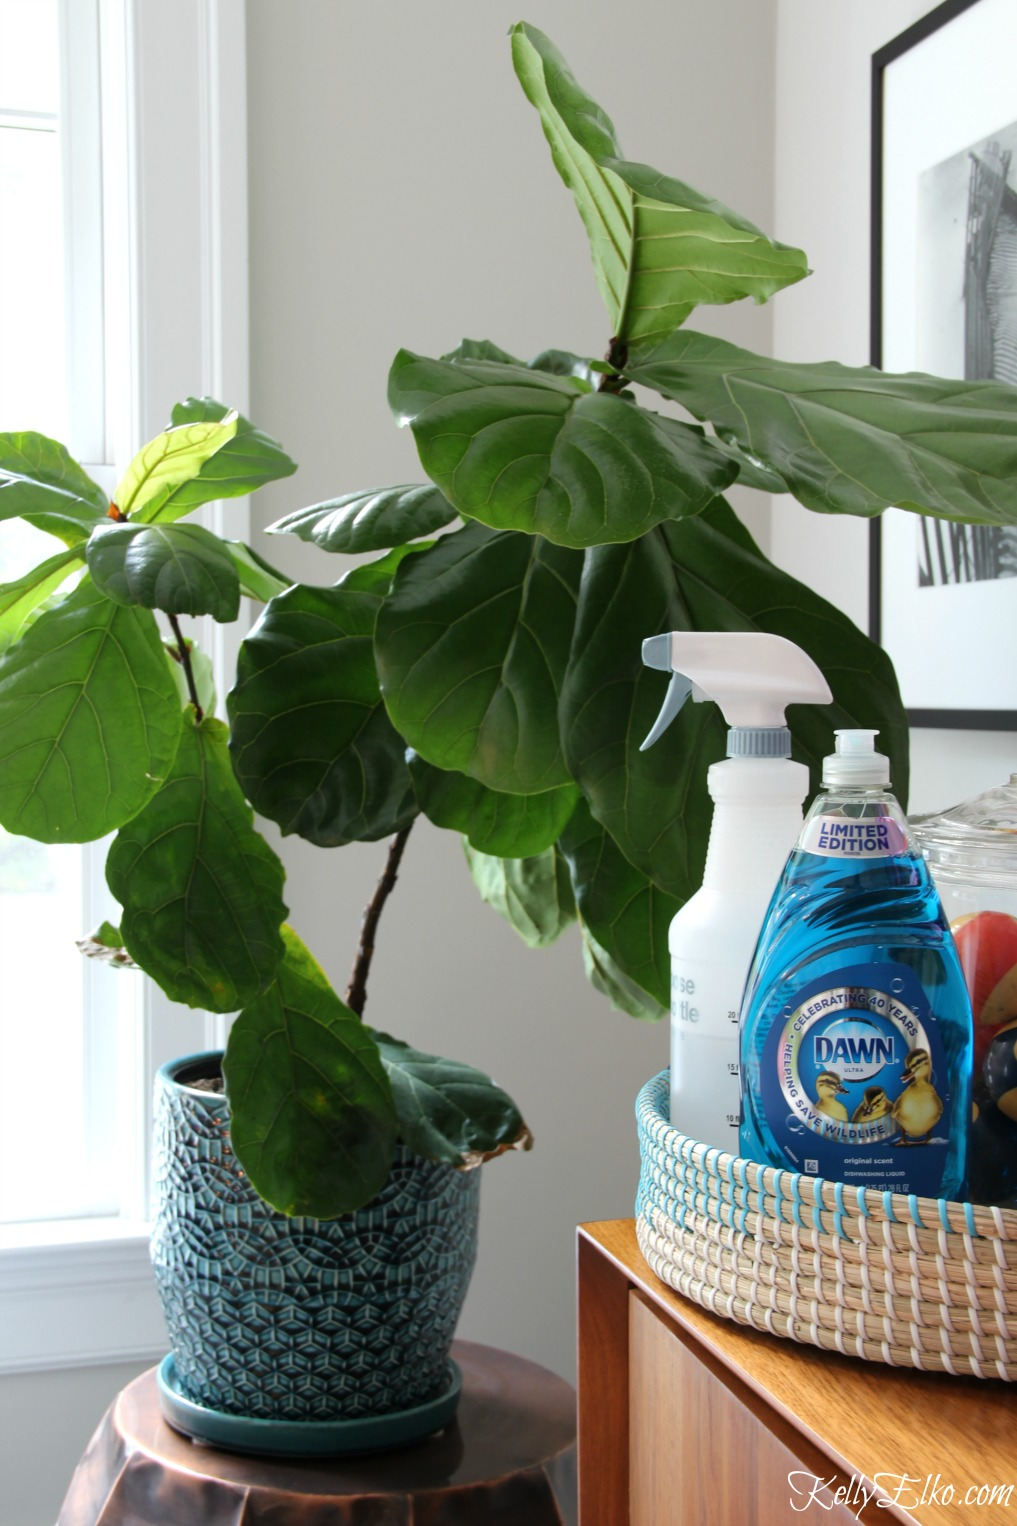 Favorite Uses for Dawn including how to keep bugs off houseplants! kellyelko.com #tipsandtricks #cleanhouse #cleaningtips #greenthumb #houseplants